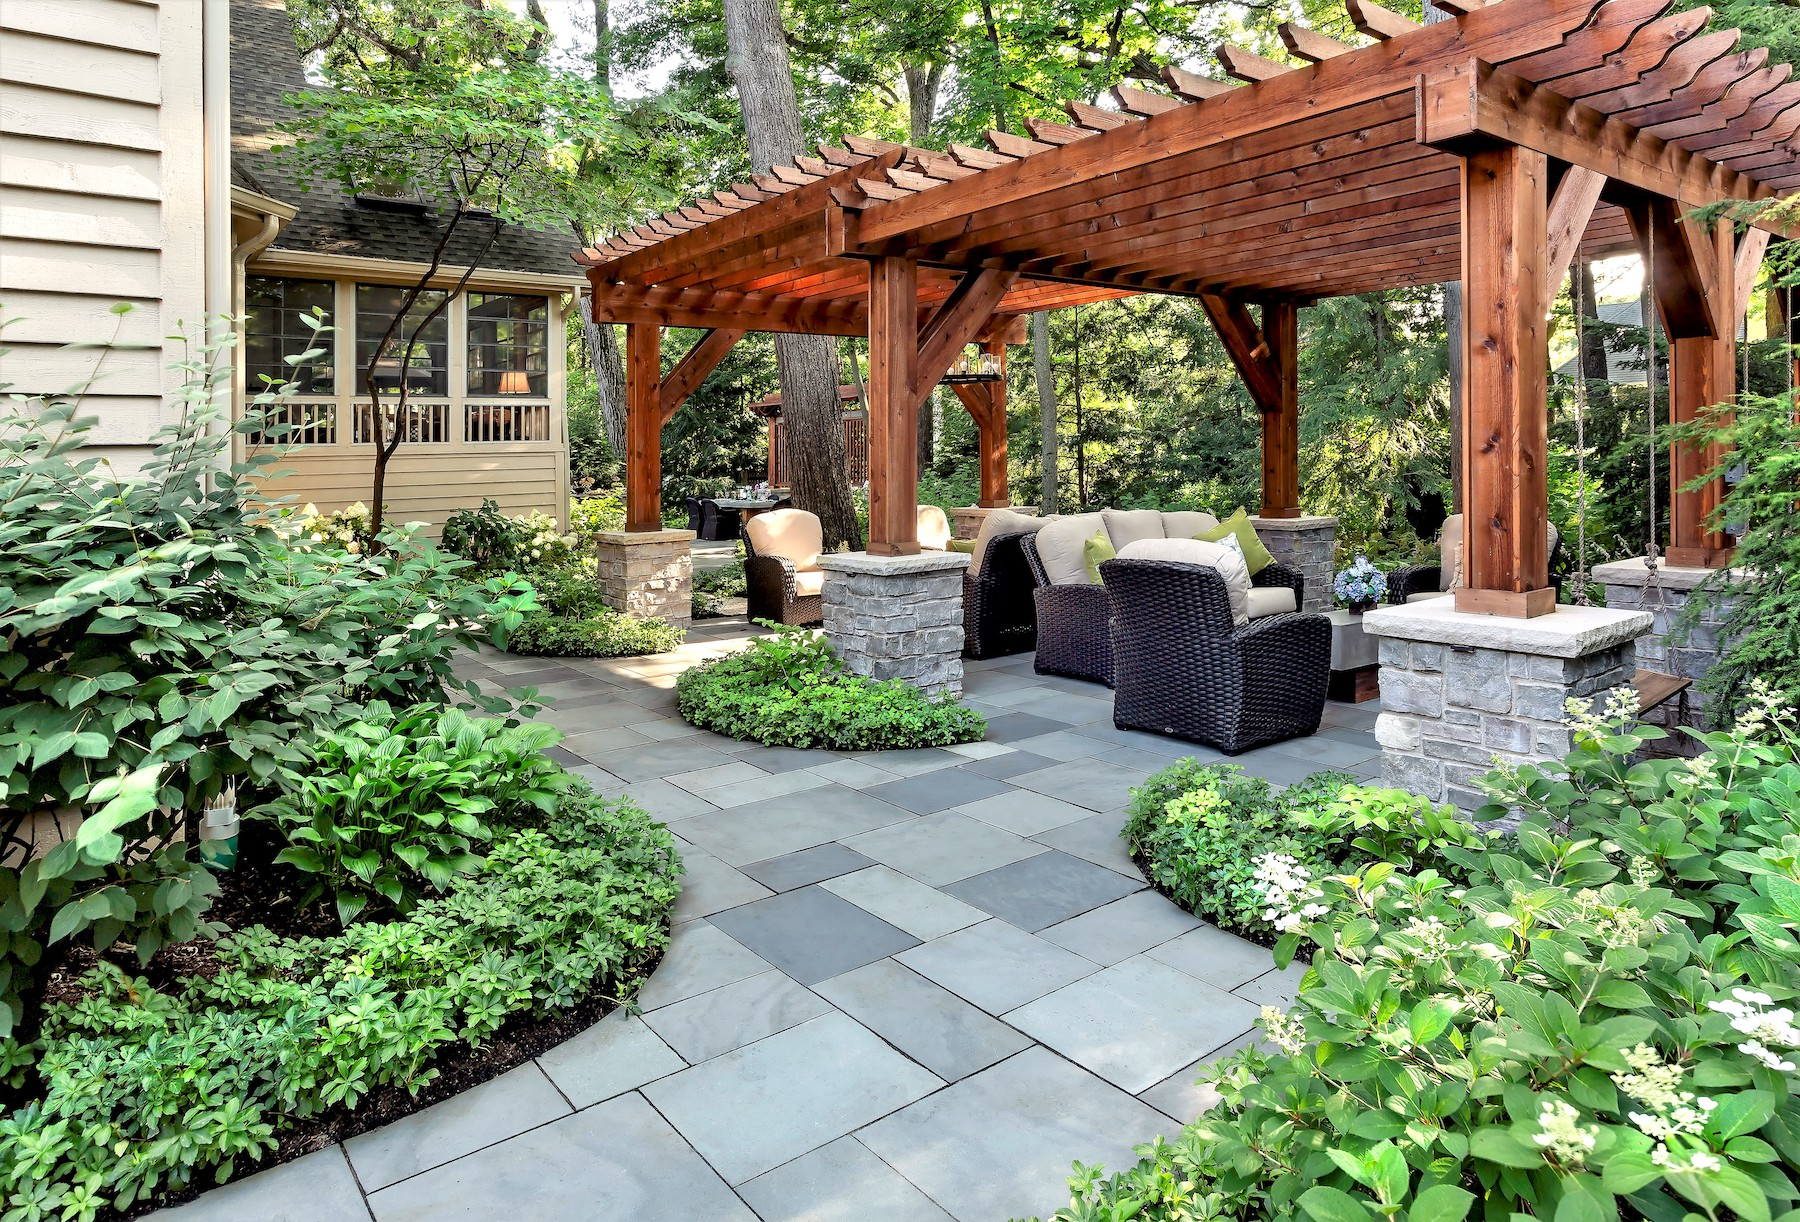 how much does it cost to install a bluestone patio in greater chicago